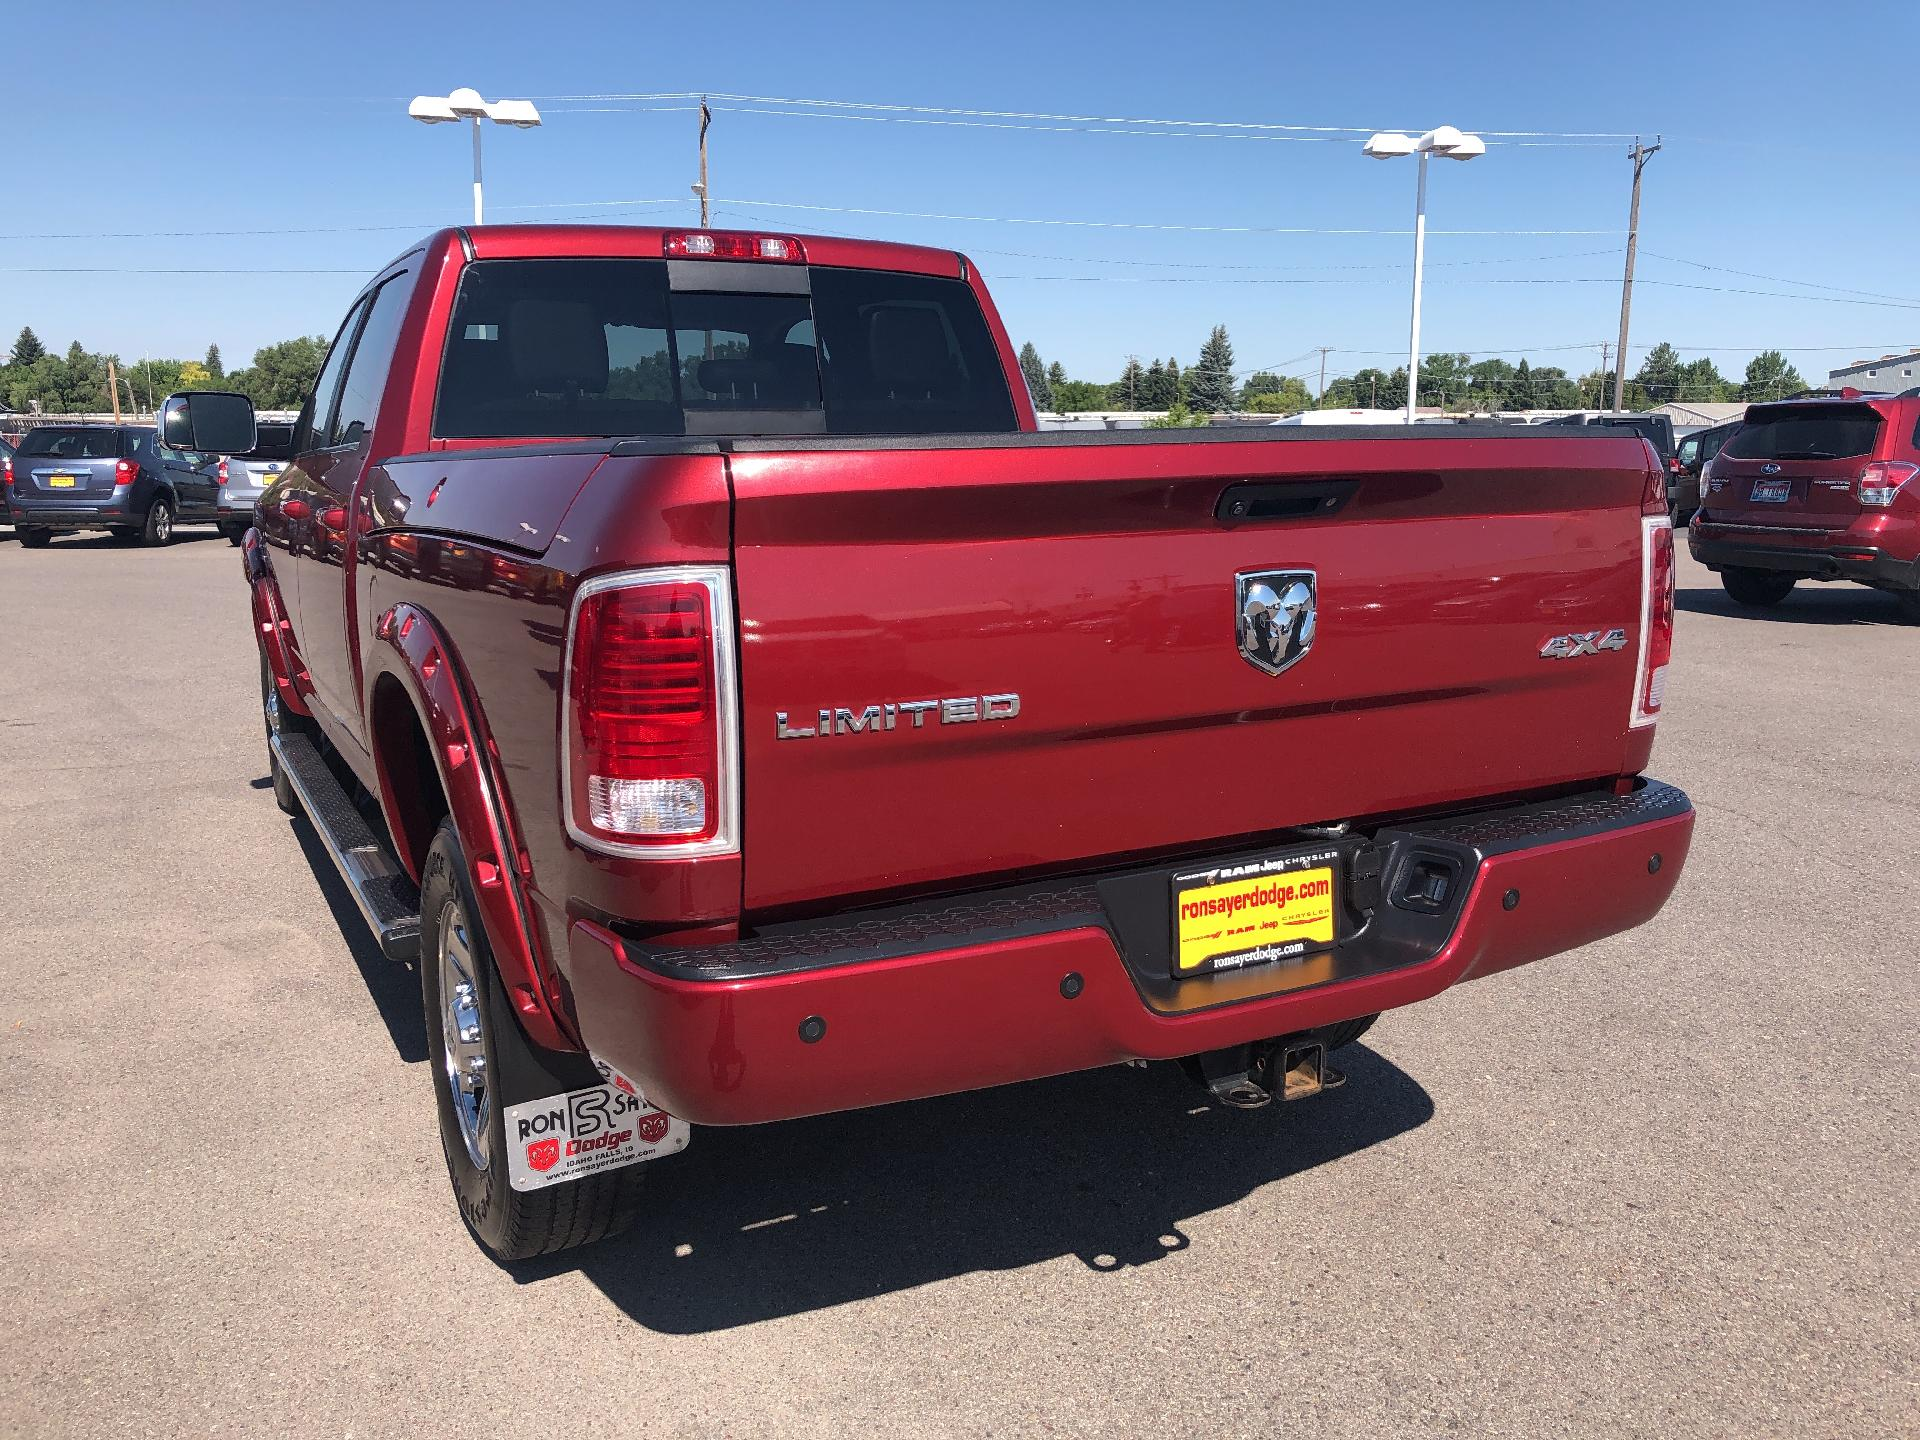 Certified Pre-Owned 2014 Ram 2500 Laramie Limited